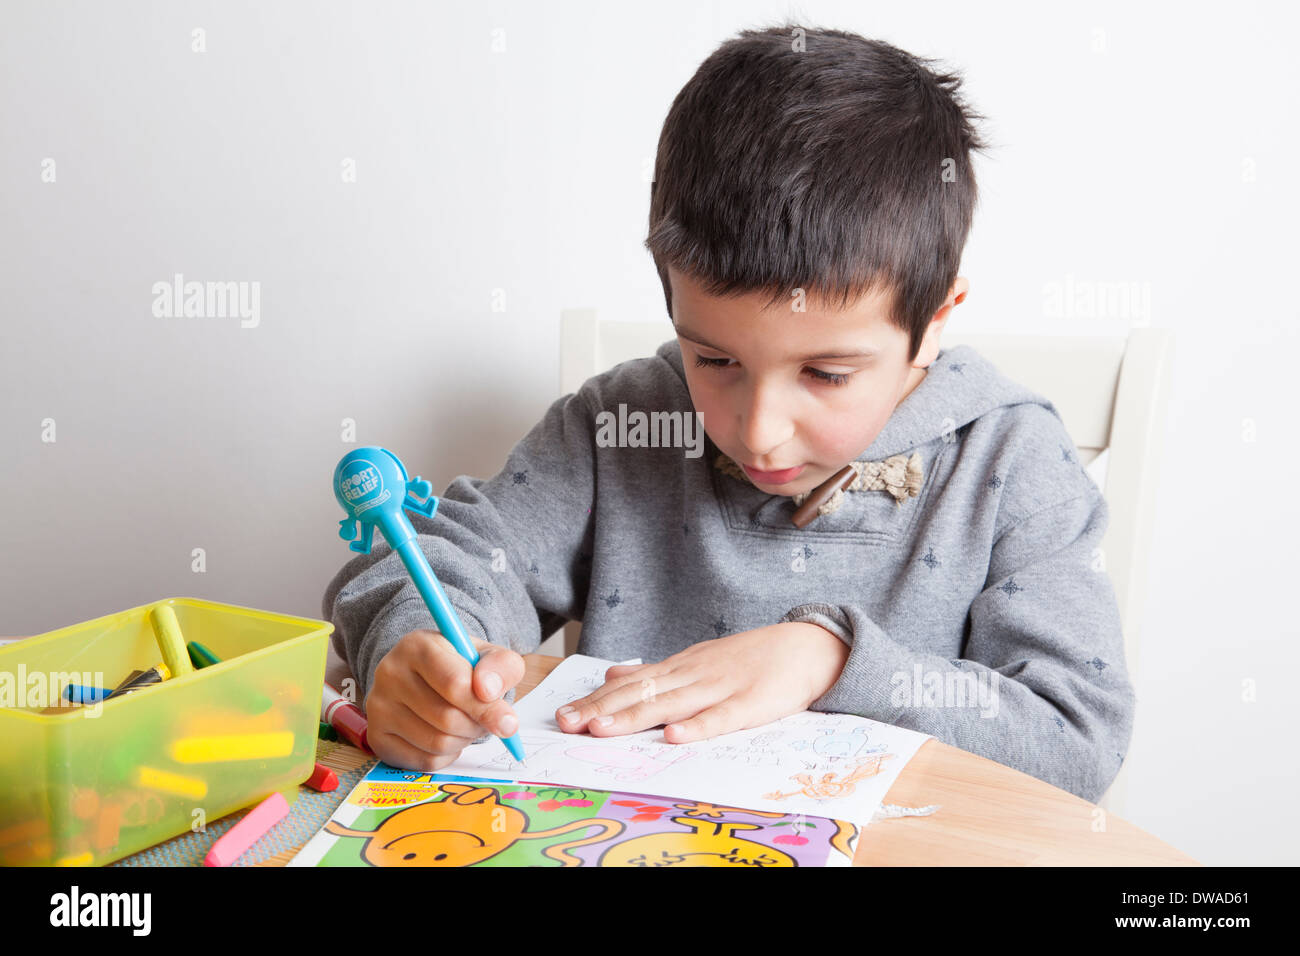 Boy draws a picture - Stock Image